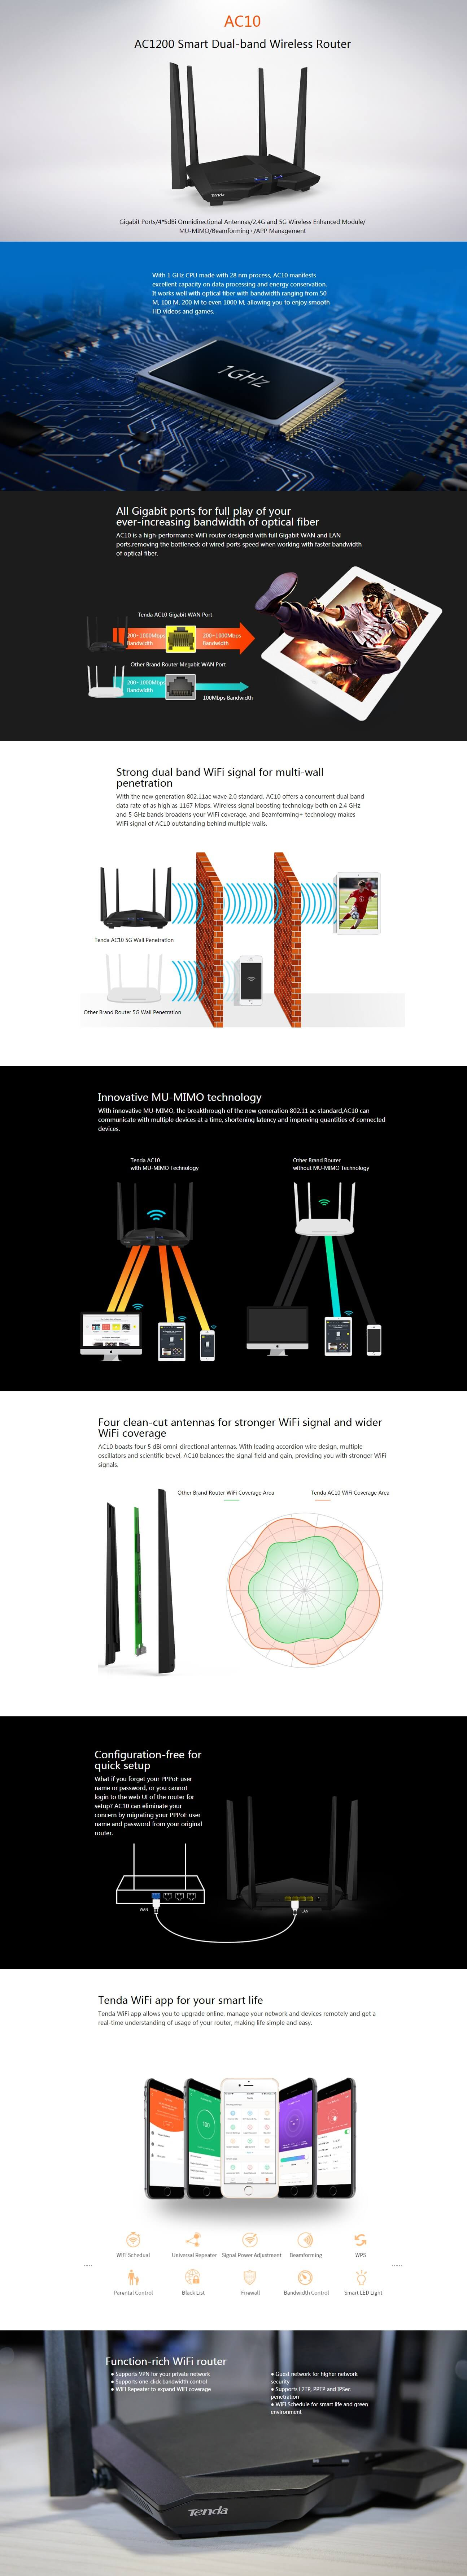 Buy Tenda Ac10 At Best Price In India Using Wireless Router Lan Diagram Product Description